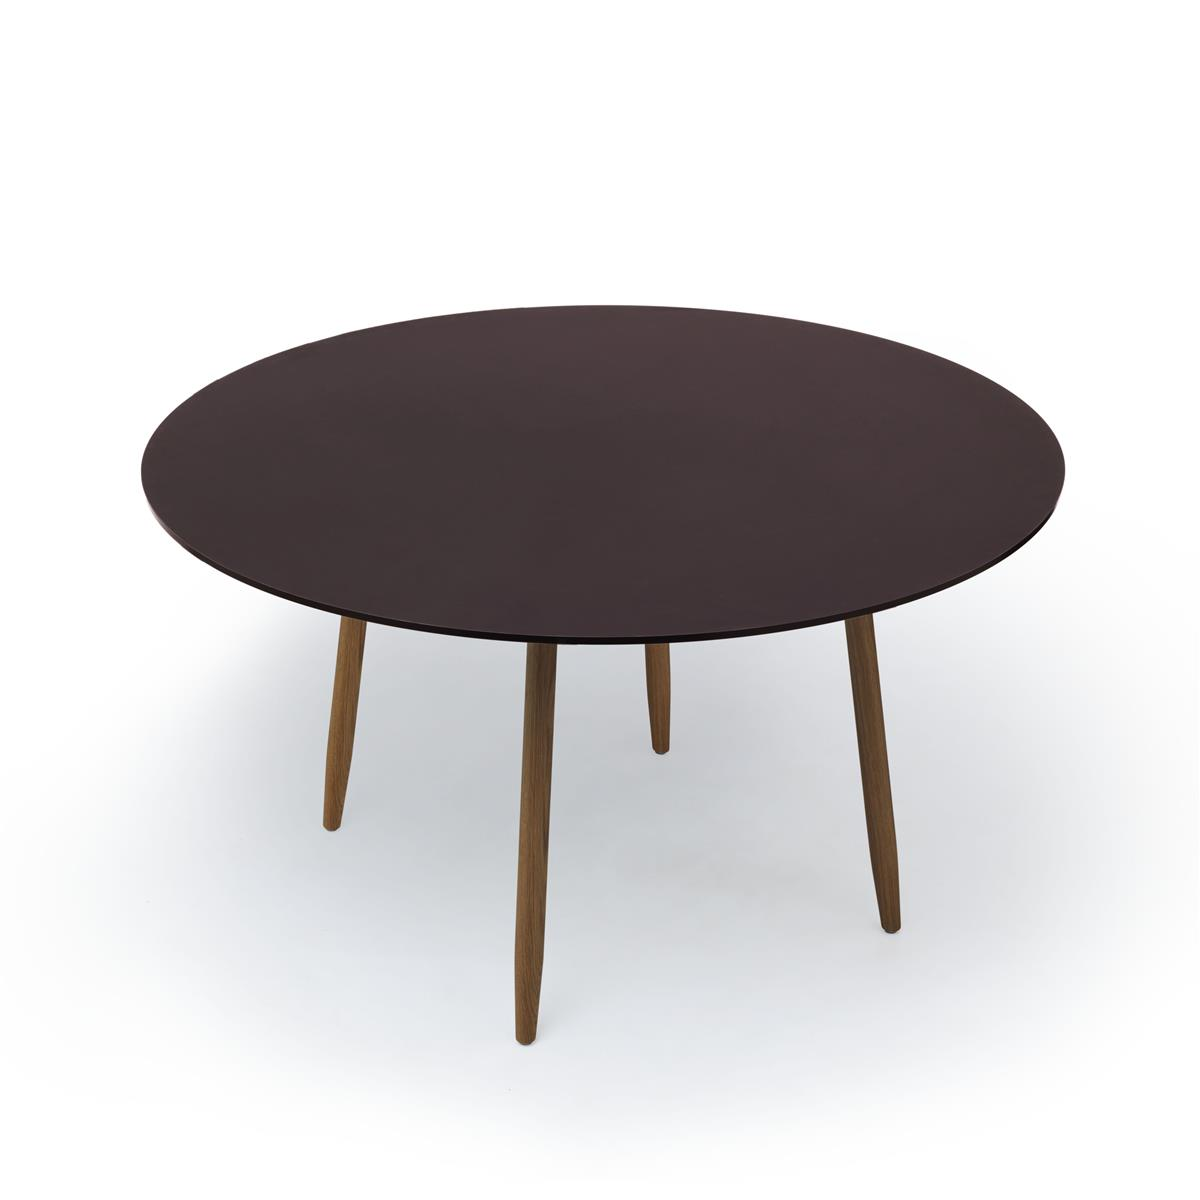 Icha Table - Burgundy & Natural Oak